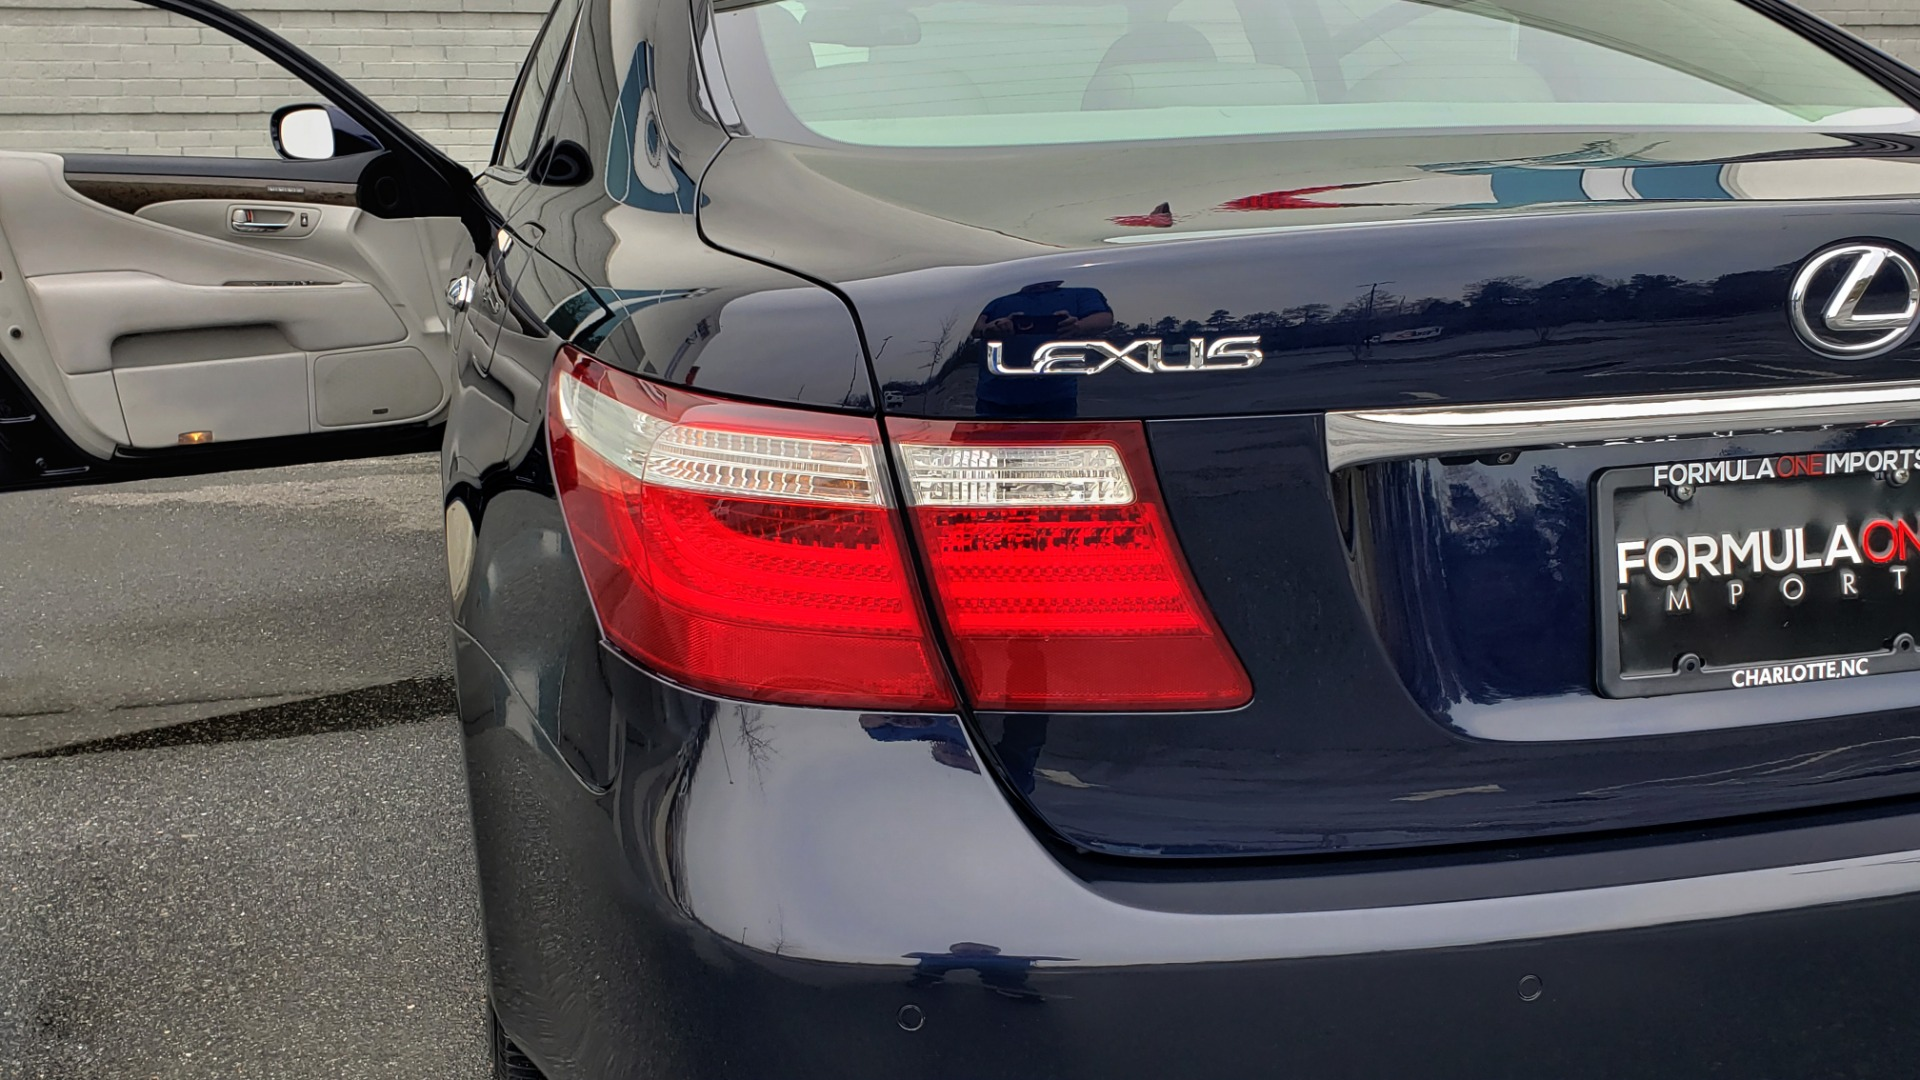 Used 2008 Lexus LS 460 LWB LUXURY SEDAN / MARK LEVINSON / INT PARK ASST / REARVIEW for sale Sold at Formula Imports in Charlotte NC 28227 23